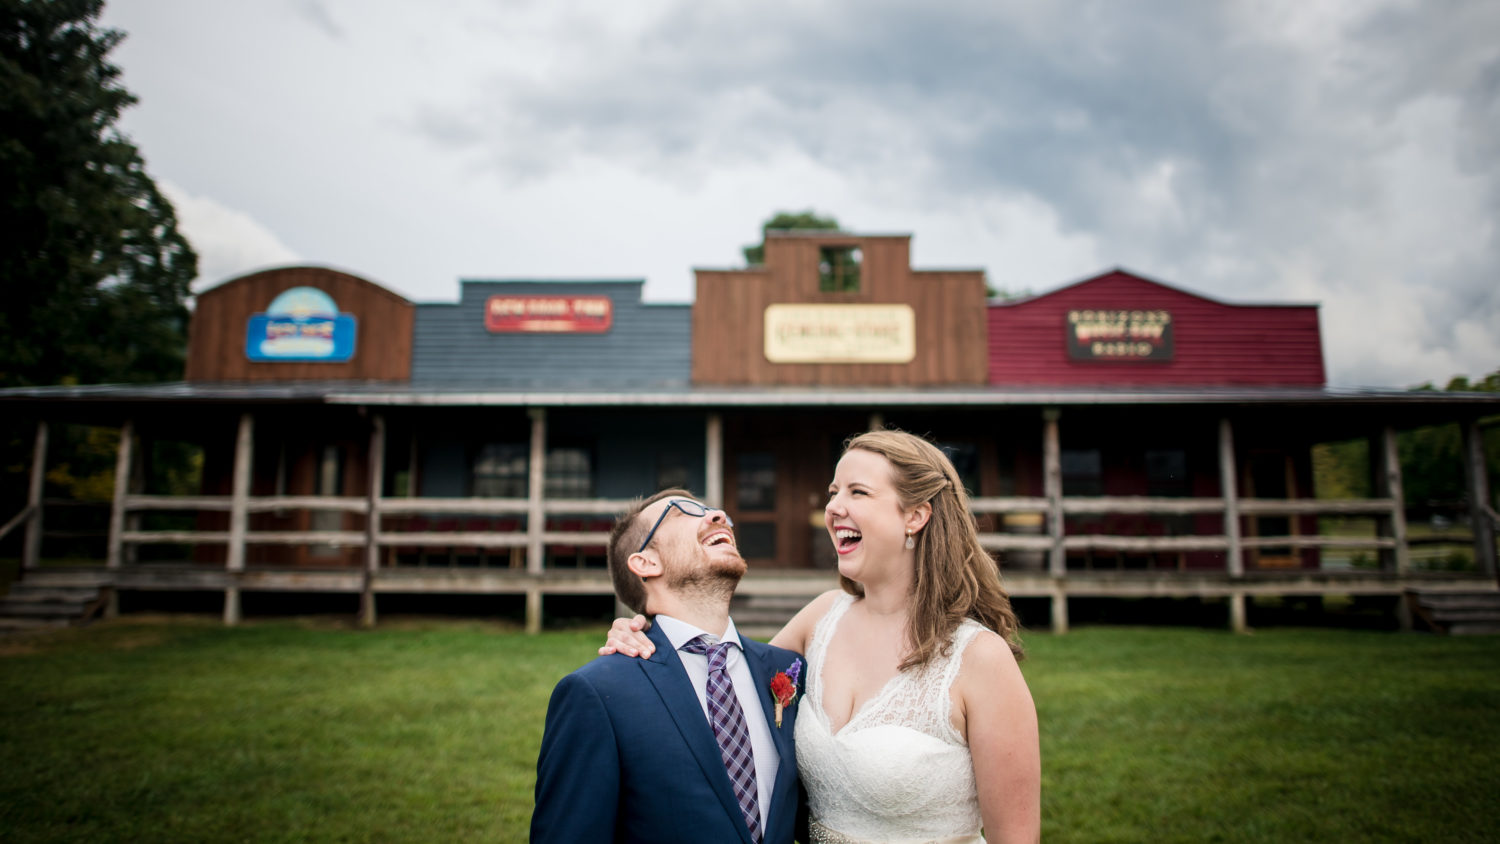 Funny moments between formal wedding portraits